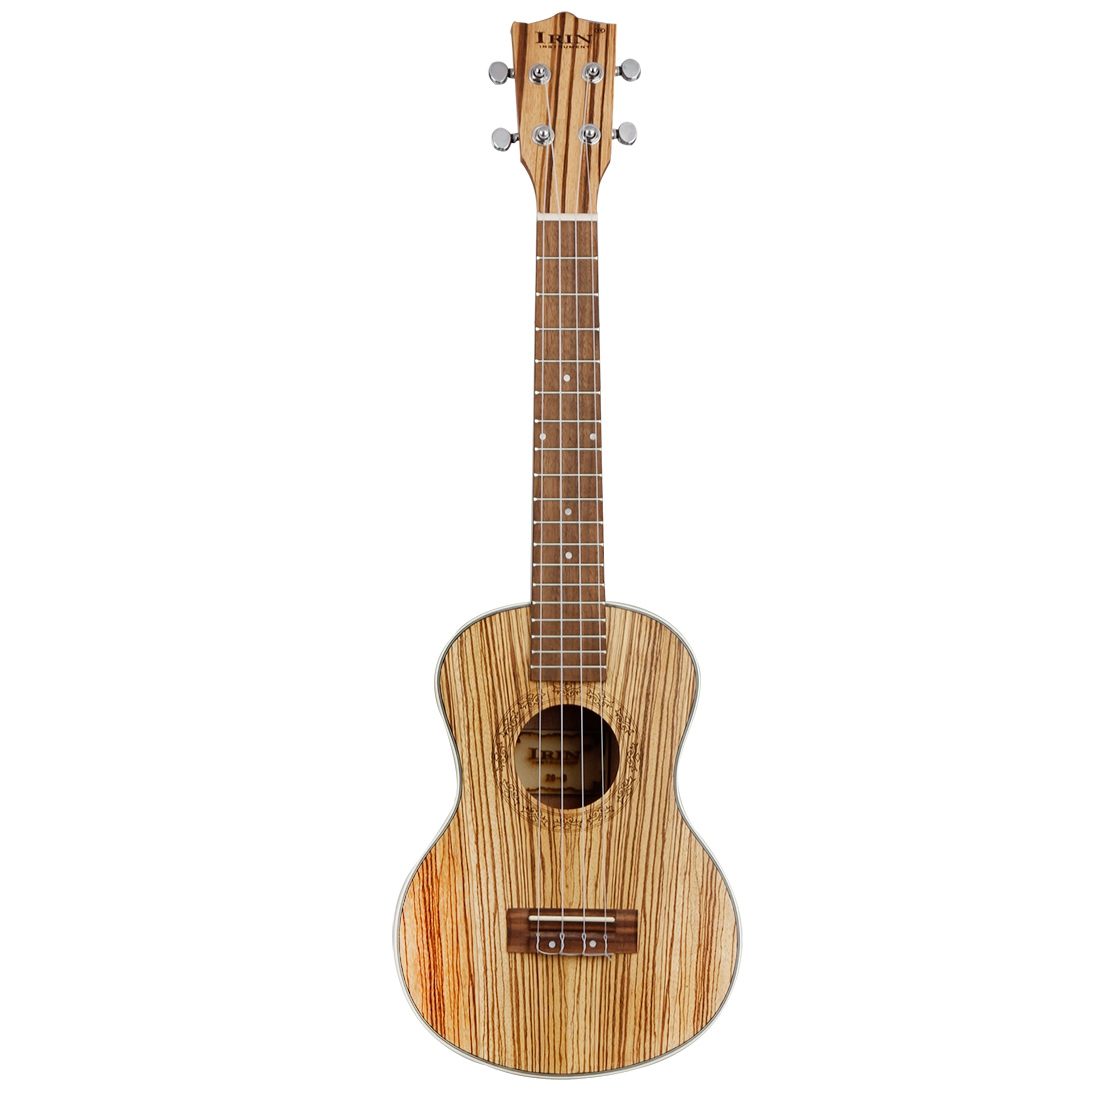 HOT-IRIN Concert Ukulele 26 Inch 4 Strings Hawaiian Mini Guitar Acoustic Guitar Ukelele guitar send gifts Musical Stringed Ins 38 inch folk guitar to send full color gifts string linden wood guitar six strings with free shipping